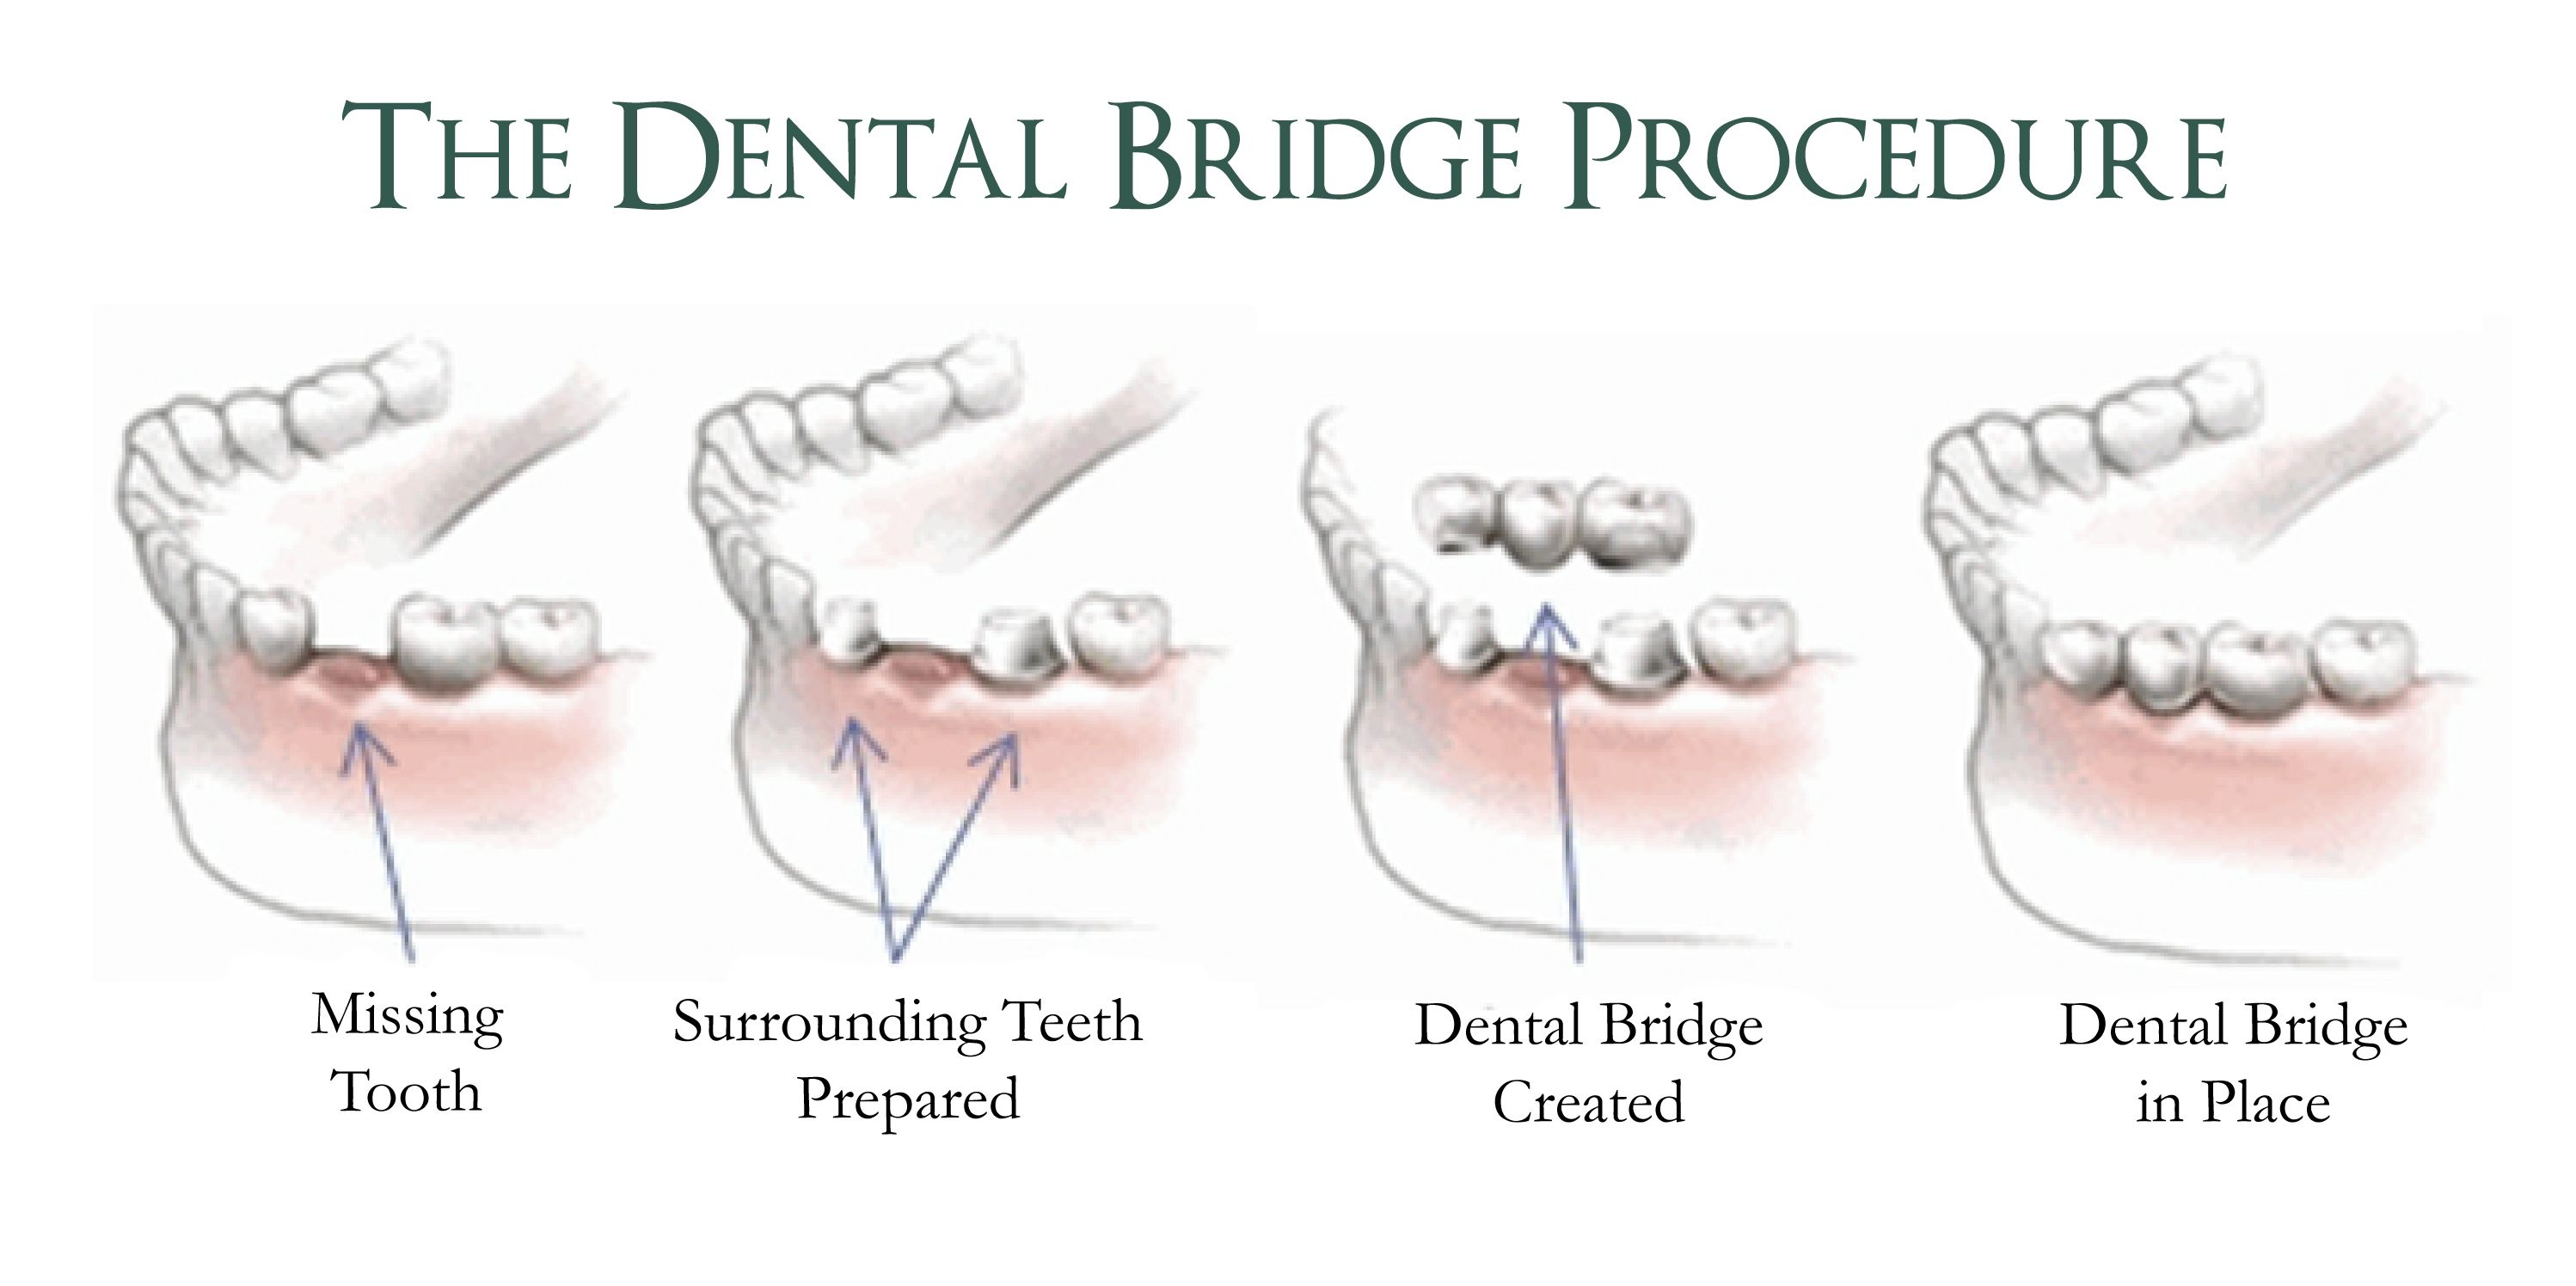 How long does it take to get a #dental #bridge and what is the ...